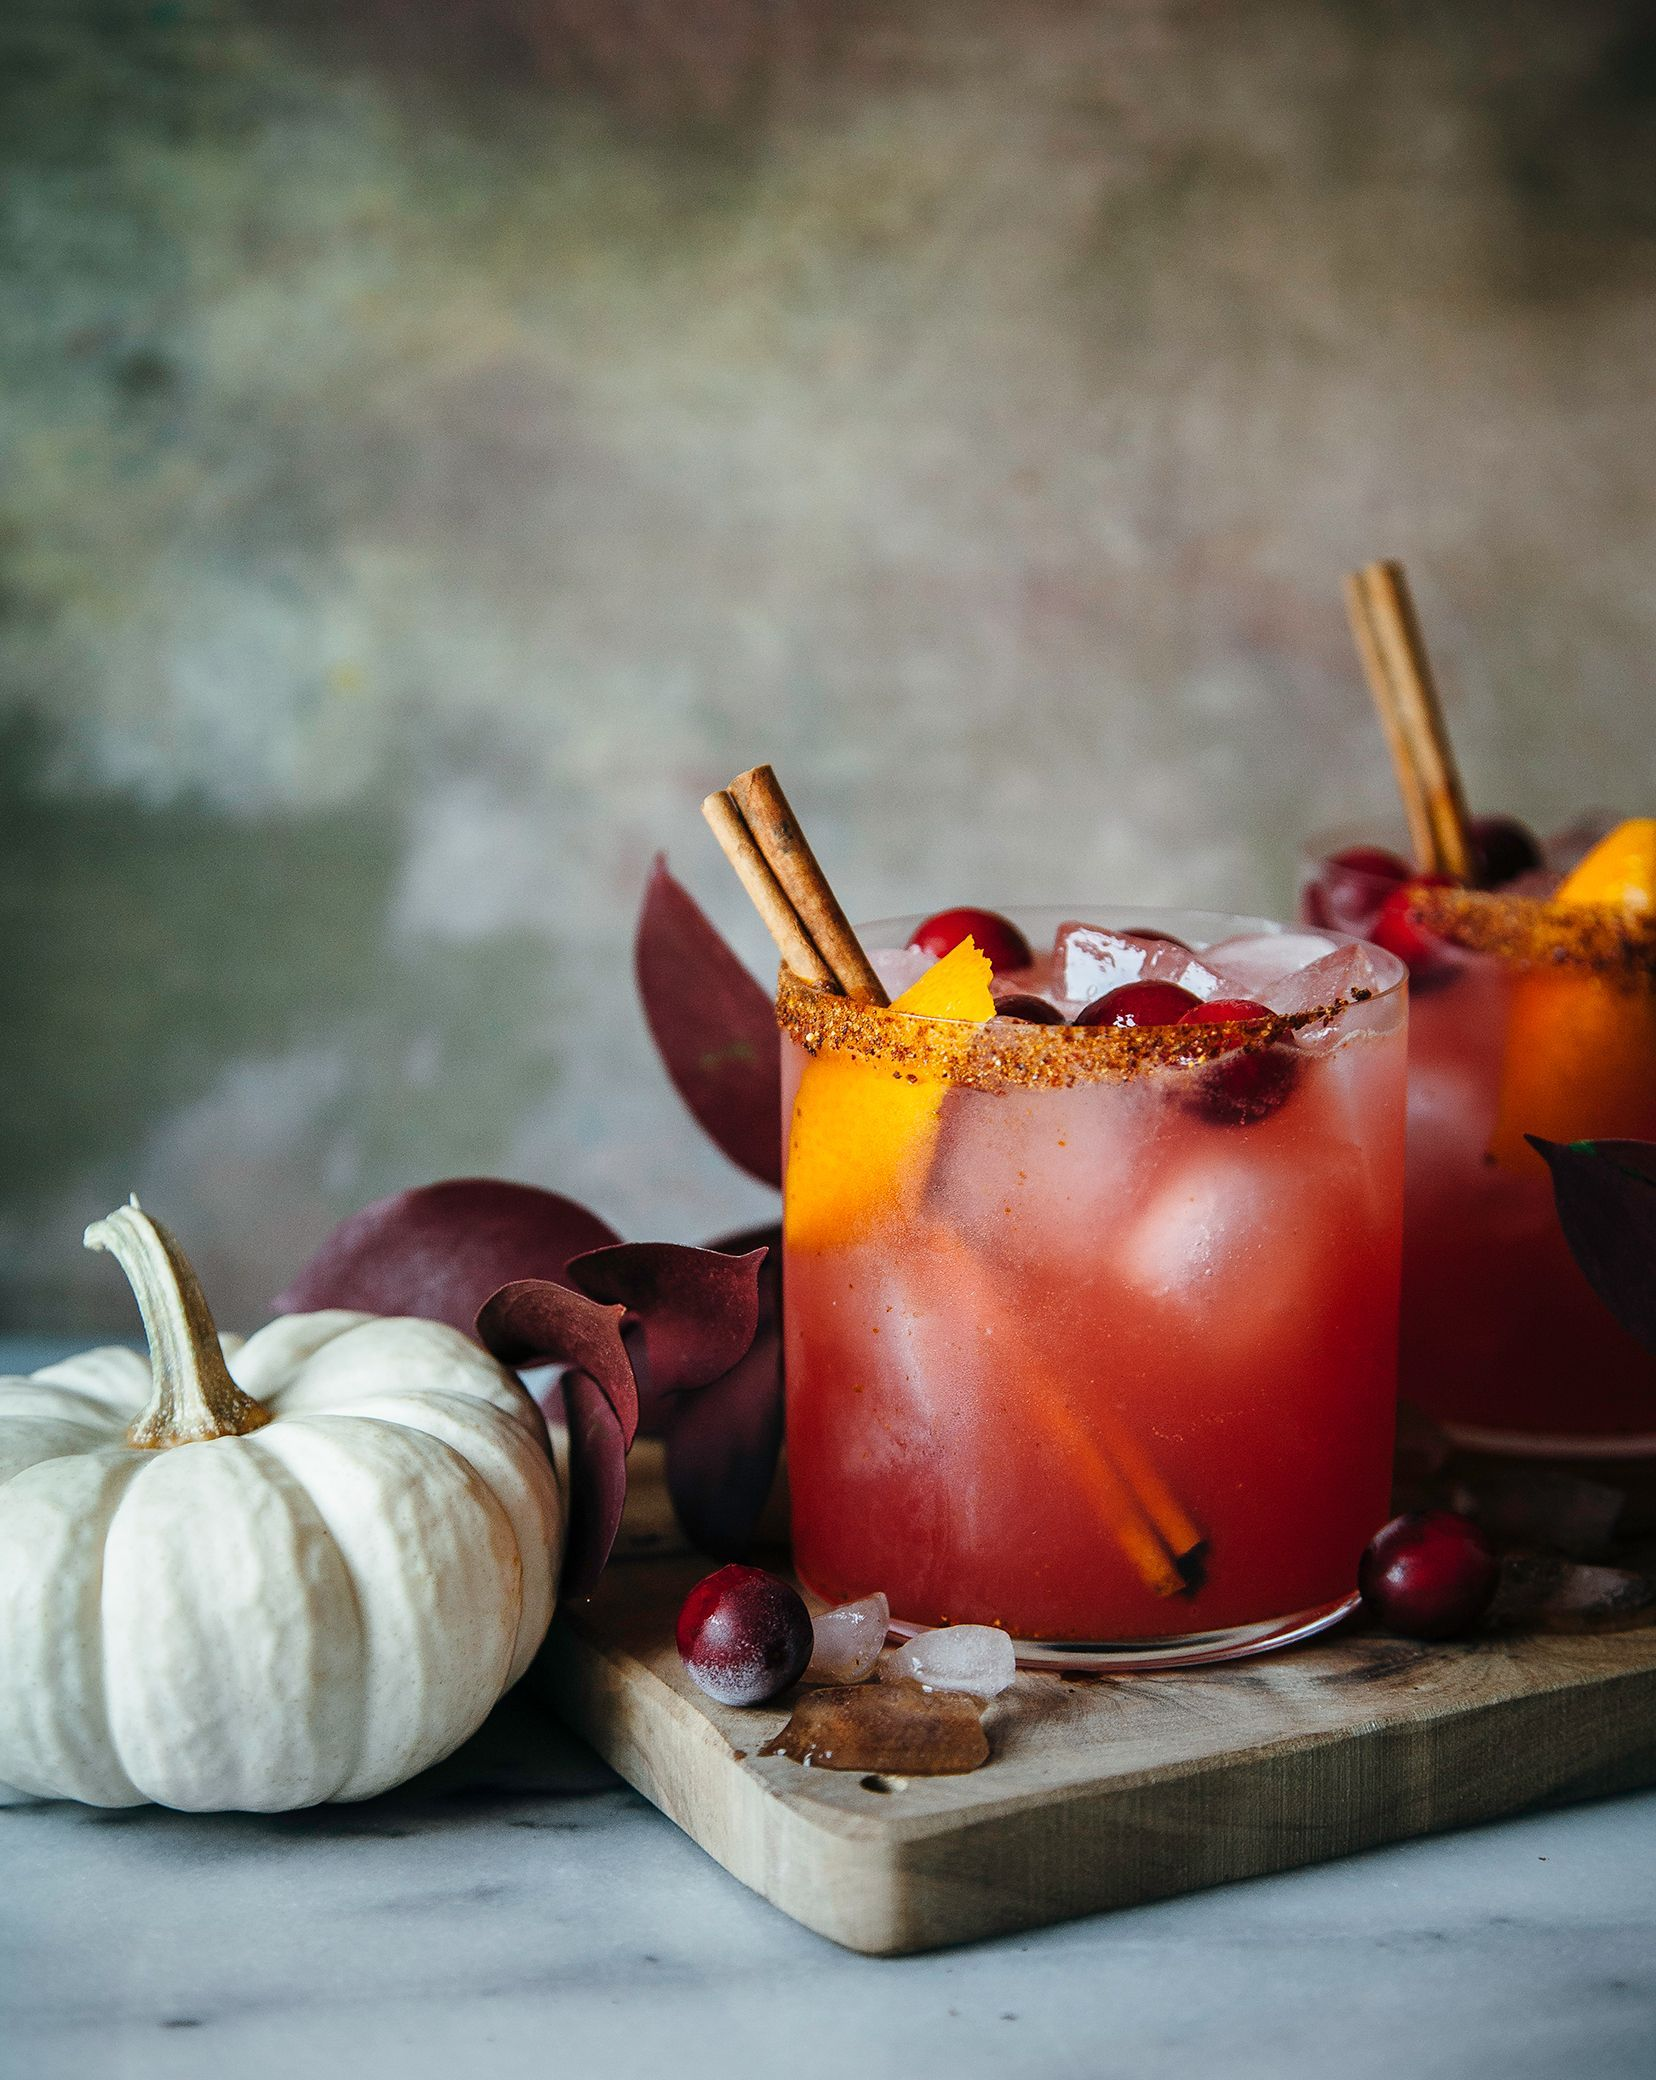 These spiced cranberry orange margaritas are refreshing, subtly spiced, and perfect for slow sipping during the holidays (or any time!).